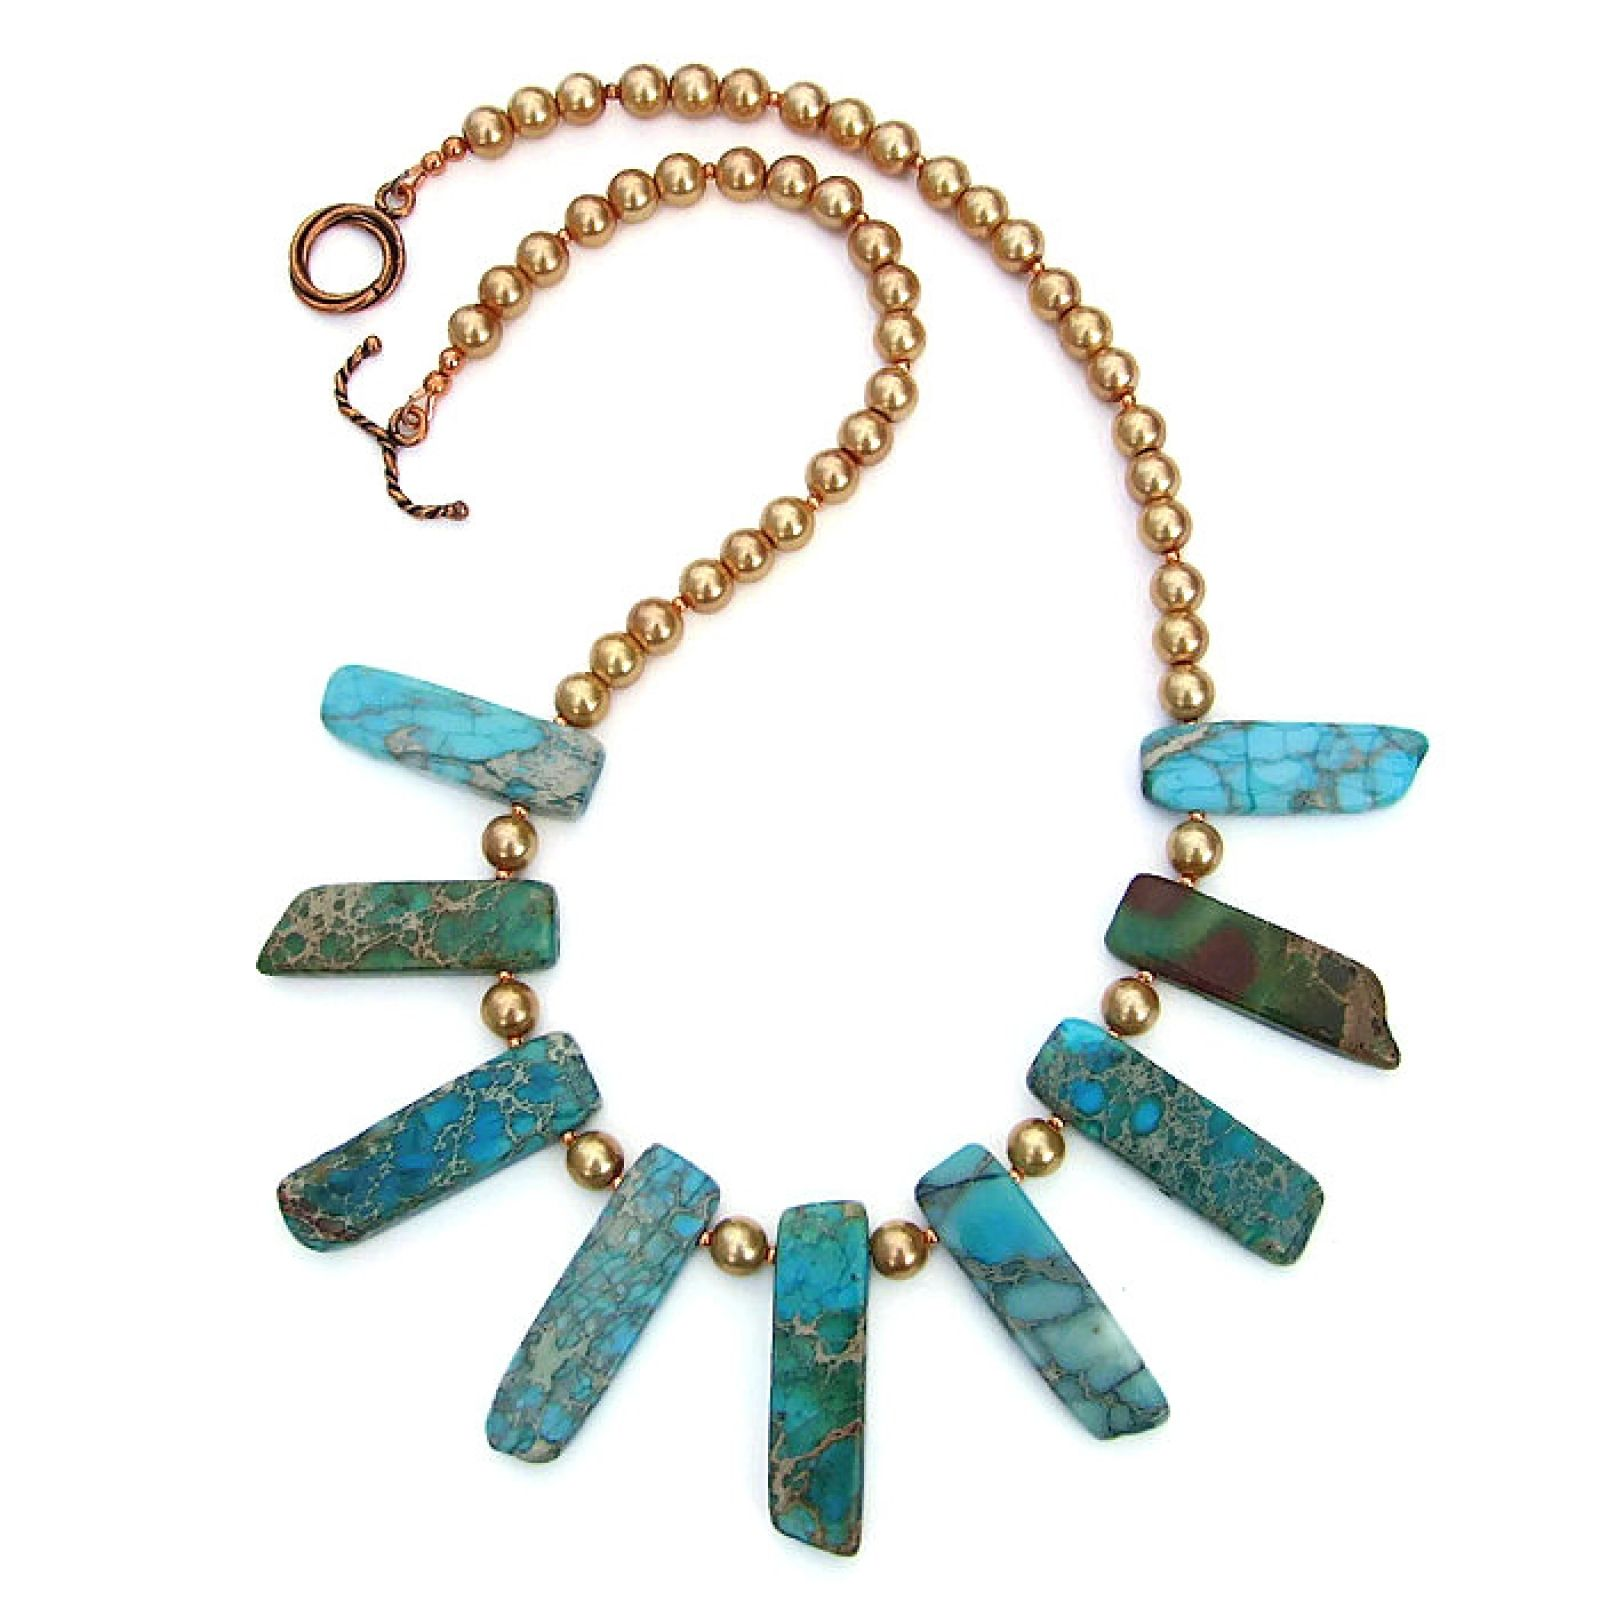 Exotic fashion jewelry - The Sea Sediment Jasper Sticks Are Dyed A Rich Aqua Color The Colors Of The Aqua Colorcollar Necklacejasperexoticfashion Jewelry Dyessticksrangegemstones